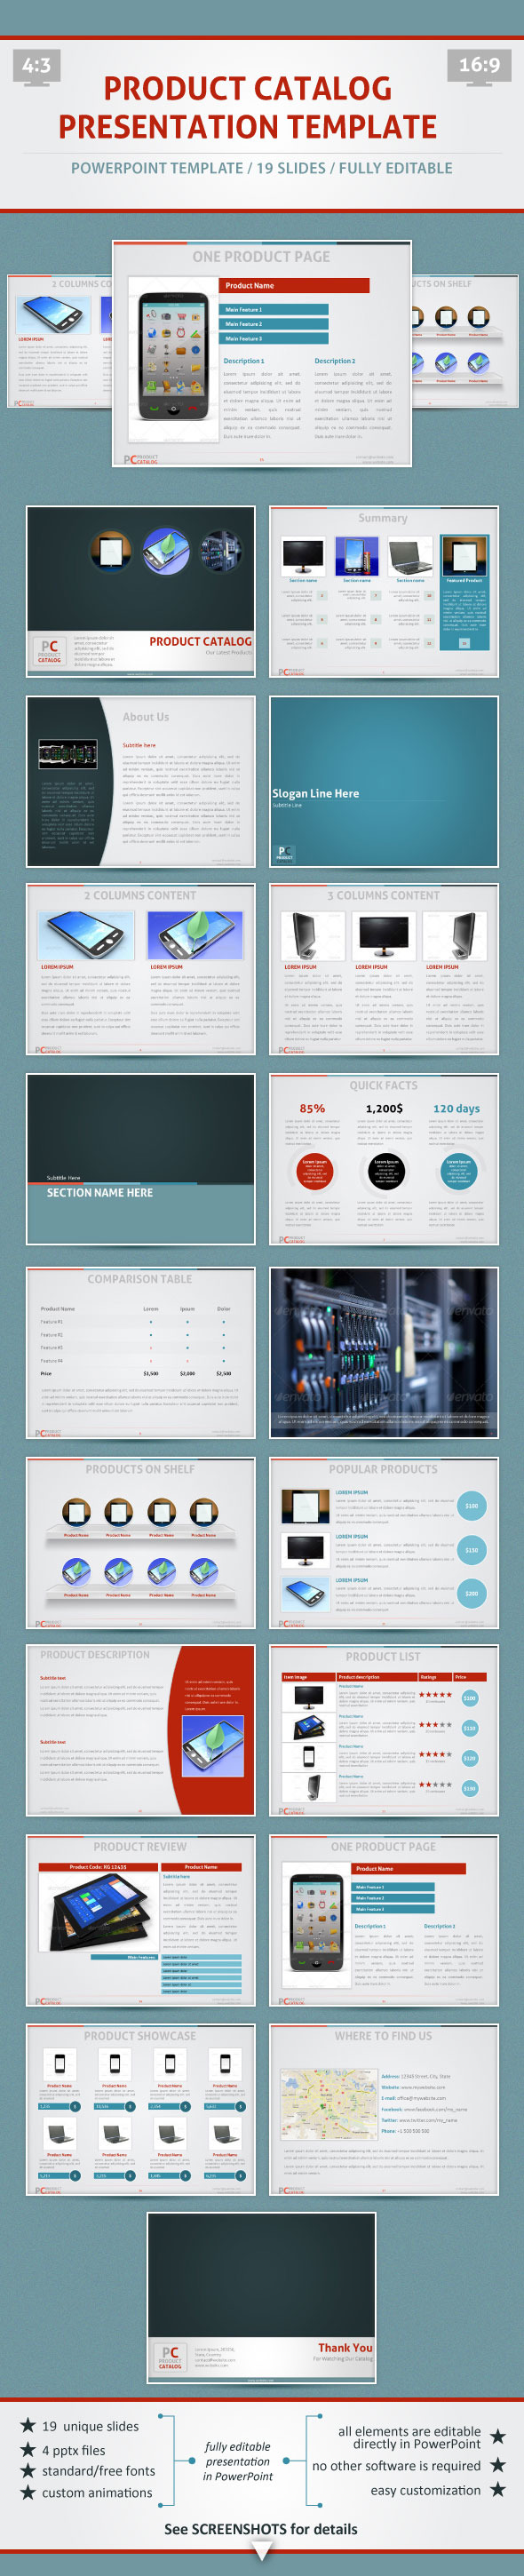 Product Catalog - PowerPoint Template - PowerPoint Templates Presentation Templates